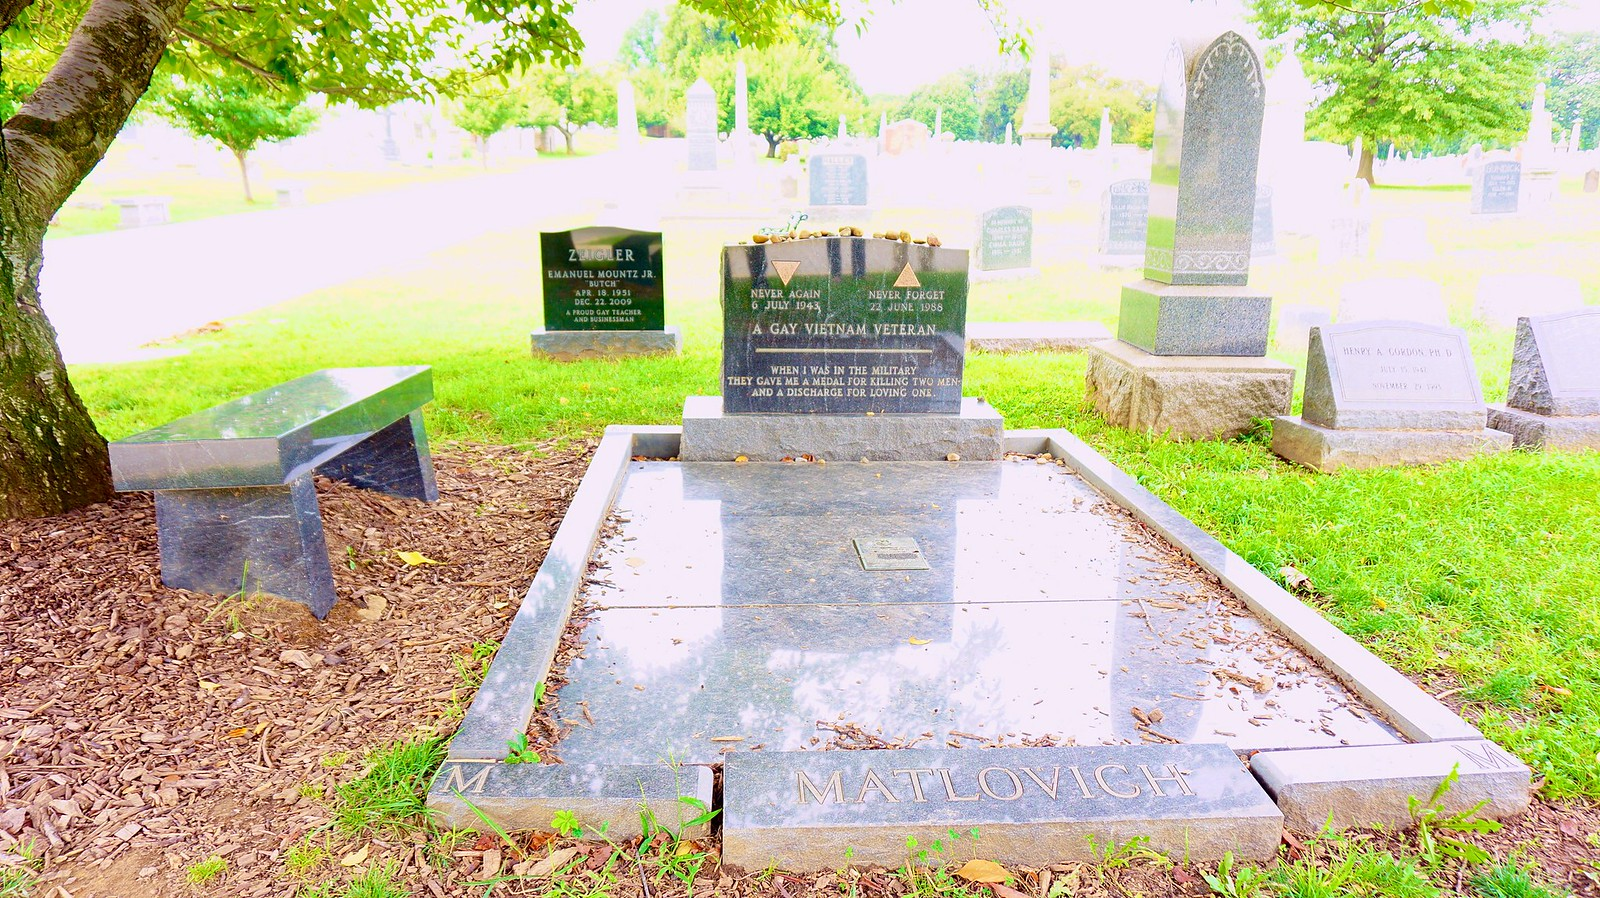 Thanks for Publishing my Photo, in 10 Facts You May Not Know About Congressional Cemetery | DCist